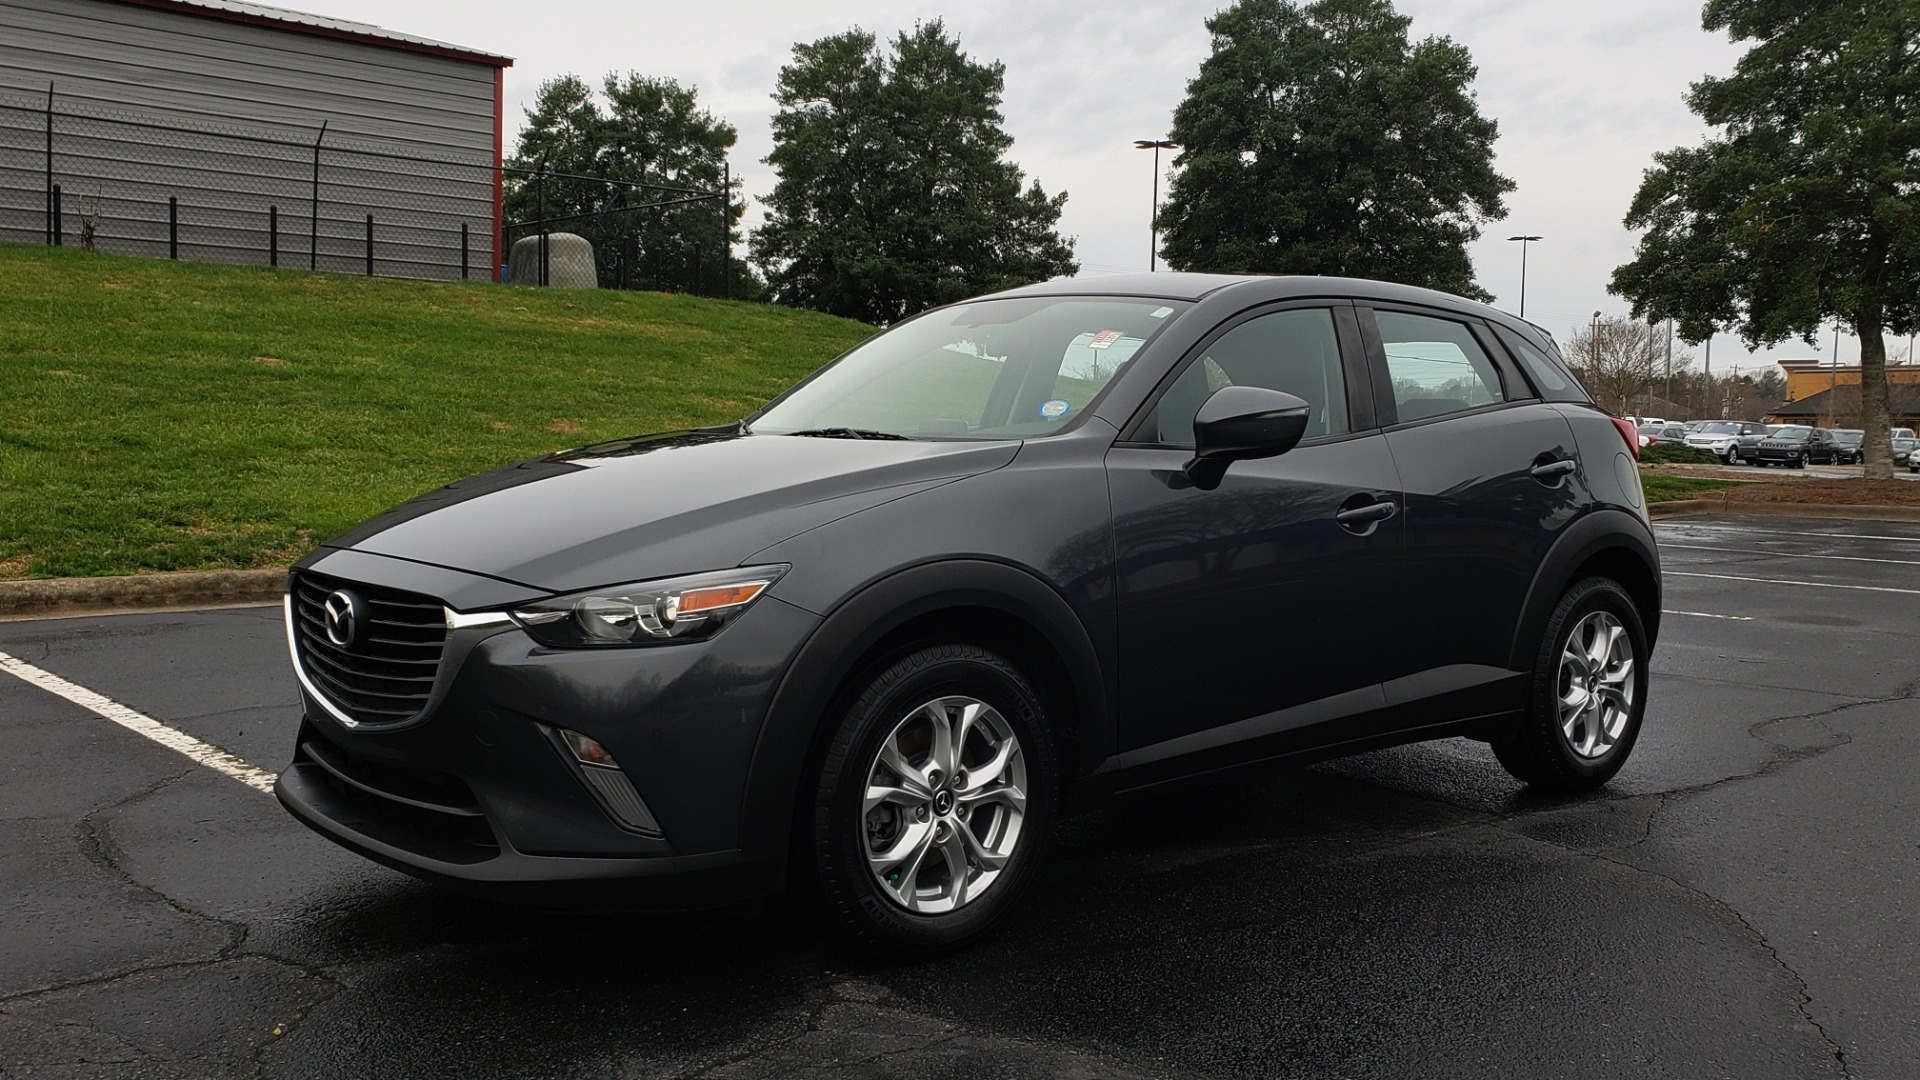 Used 2016 Mazda CX-3 TOURING AWD / 4-CYL / 6-SPD AUTO / NAV / HTD STS / 7-INCH DISPLAY for sale Sold at Formula Imports in Charlotte NC 28227 1